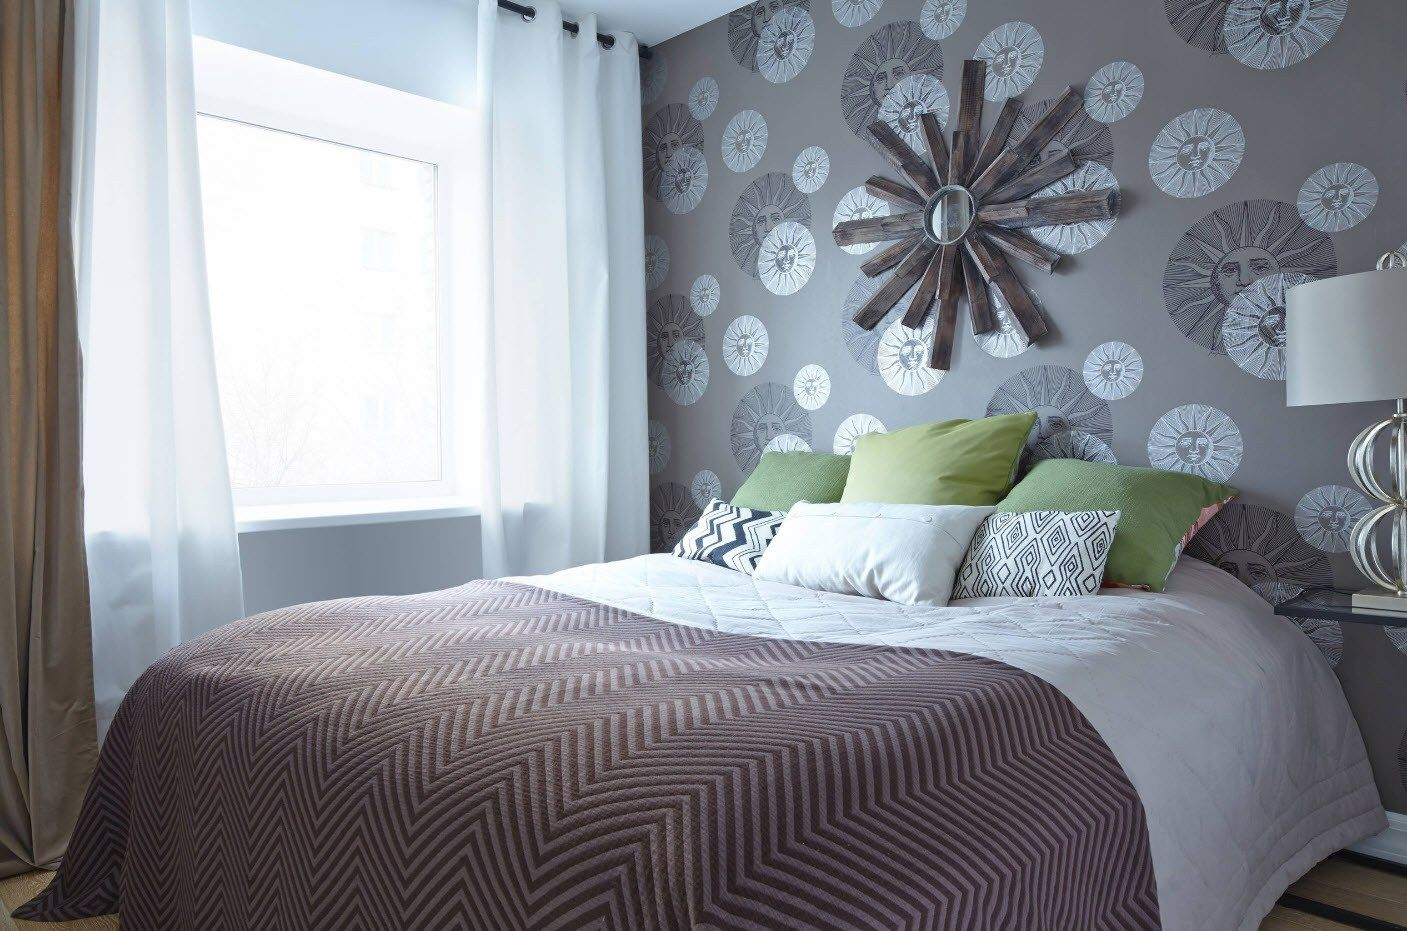 Nice decoration fo the small bedroom with pattern of the wallpaper and installation at the headboard